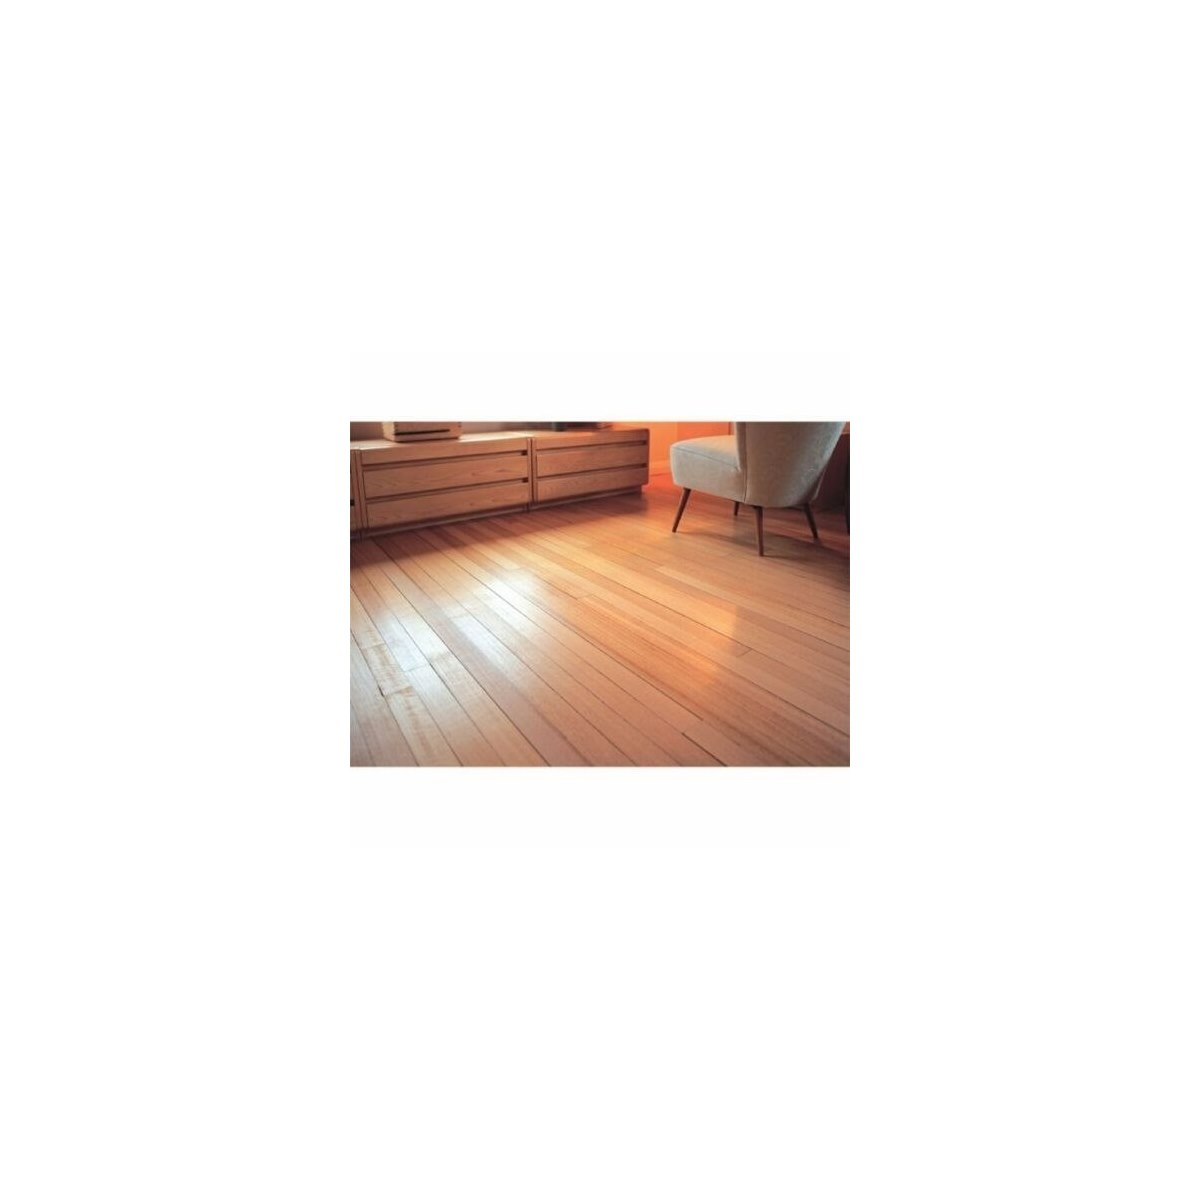 Where to buy Varnish for Wood Floors